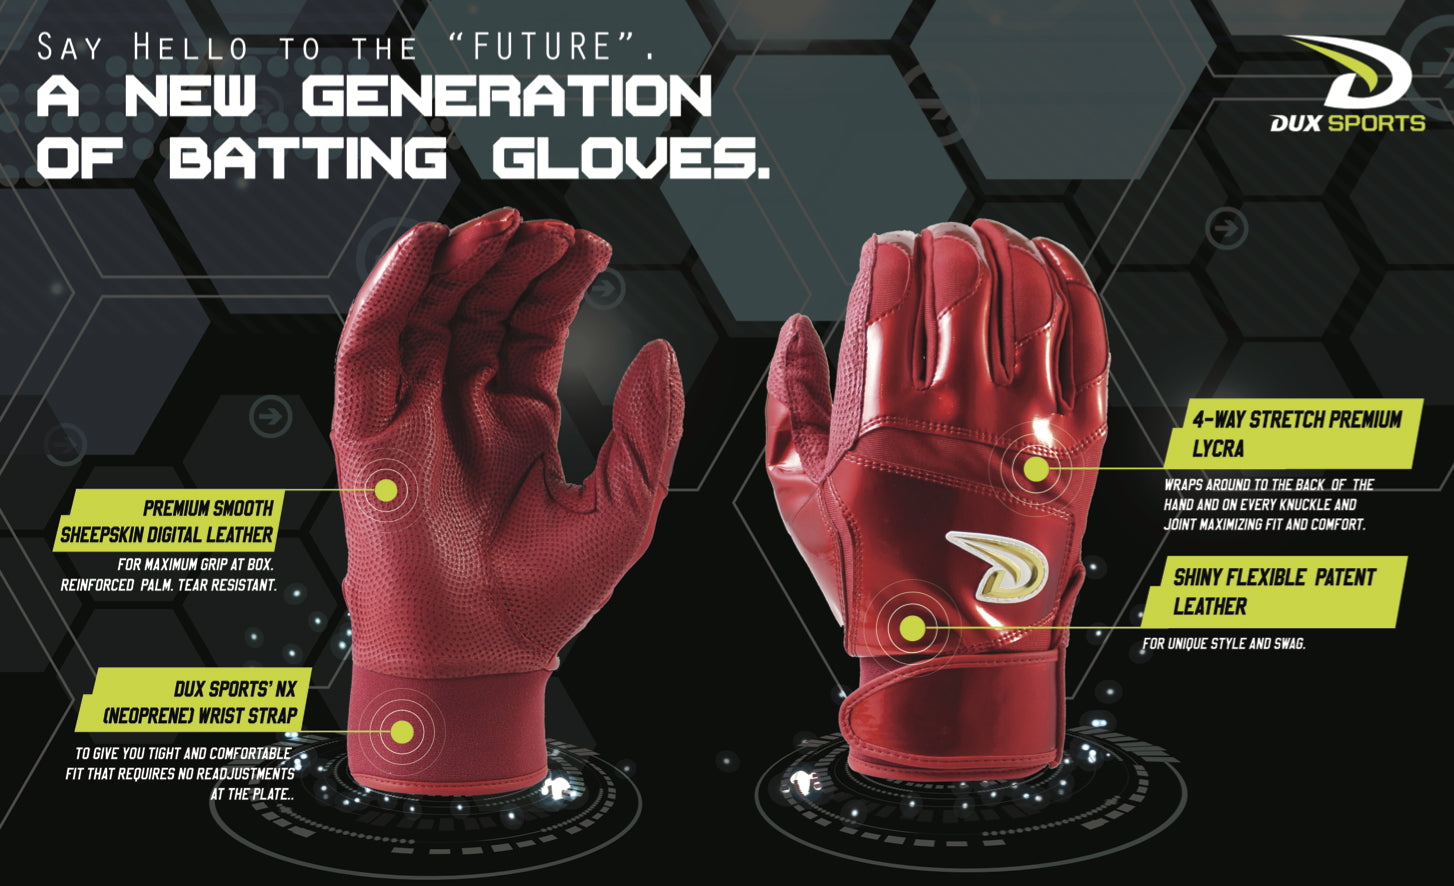 Dux Sports Best Batting Gloves for baseball Future collection